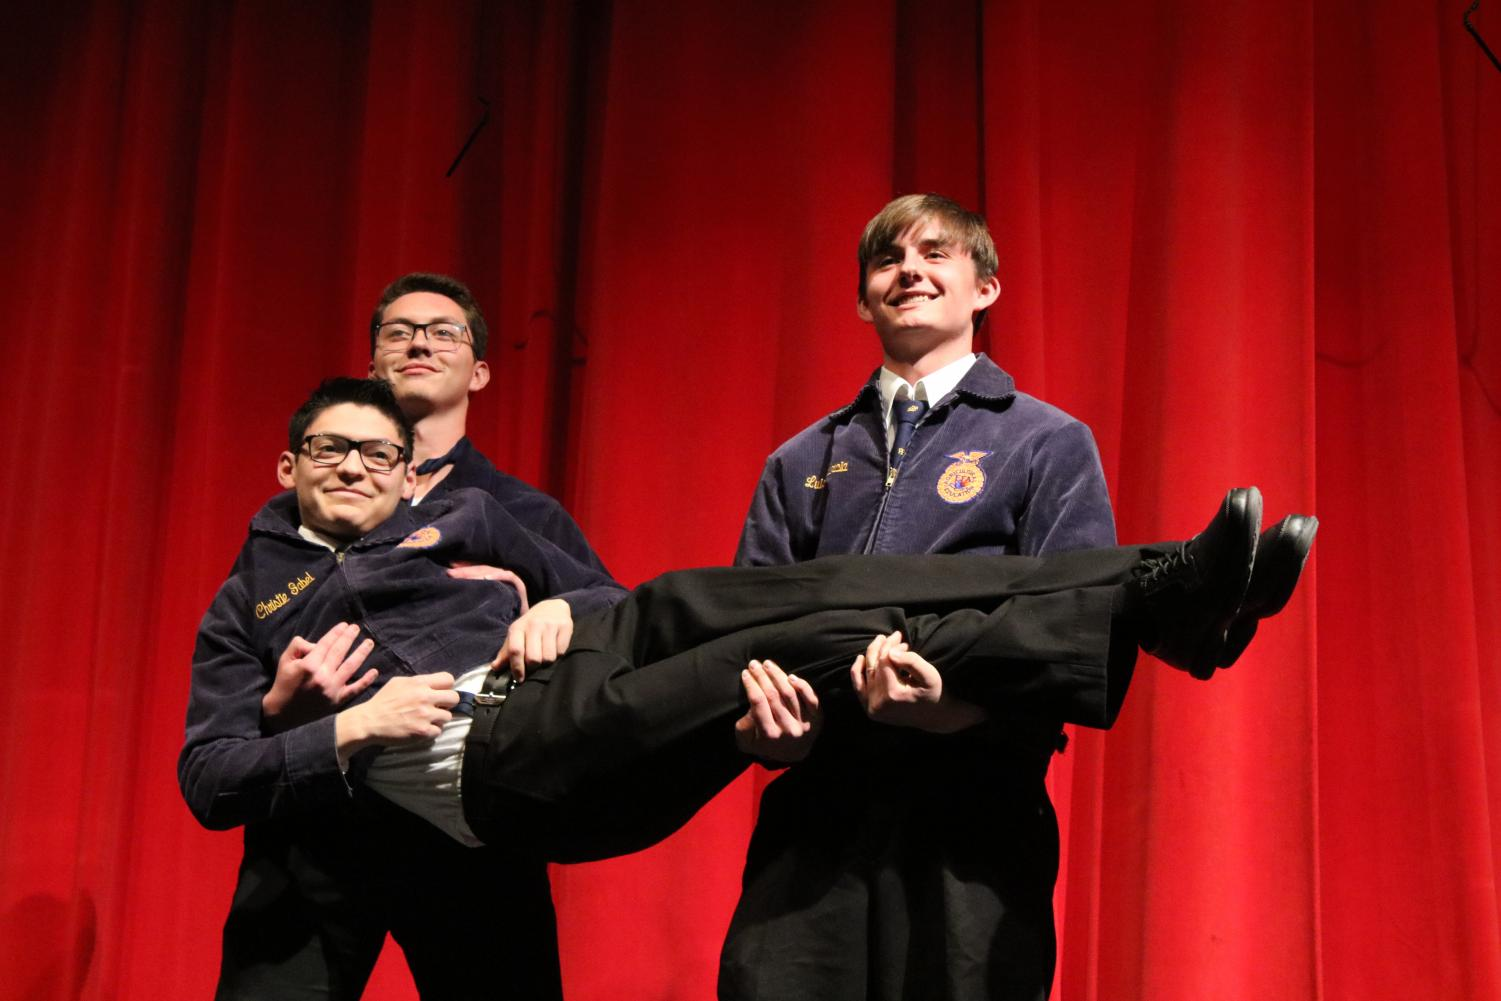 Seniors Jesse Mongan and Matthew Jones carry out Neo Orosco on stage to flex their muscles for buyers.